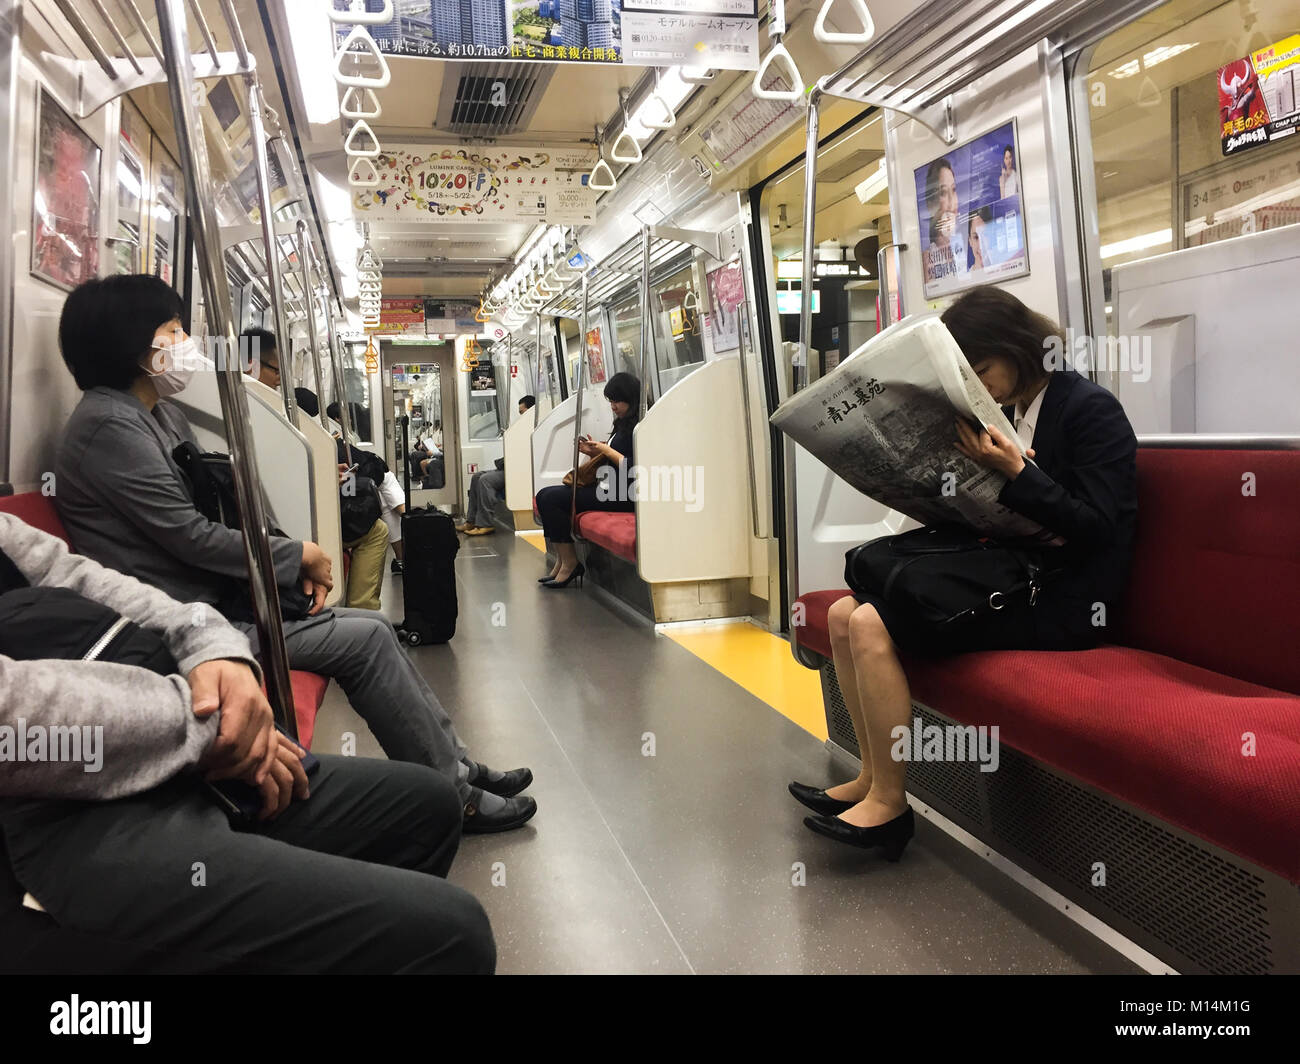 Crowded Subway Car Stock Photos & Crowded Subway Car Stock ...